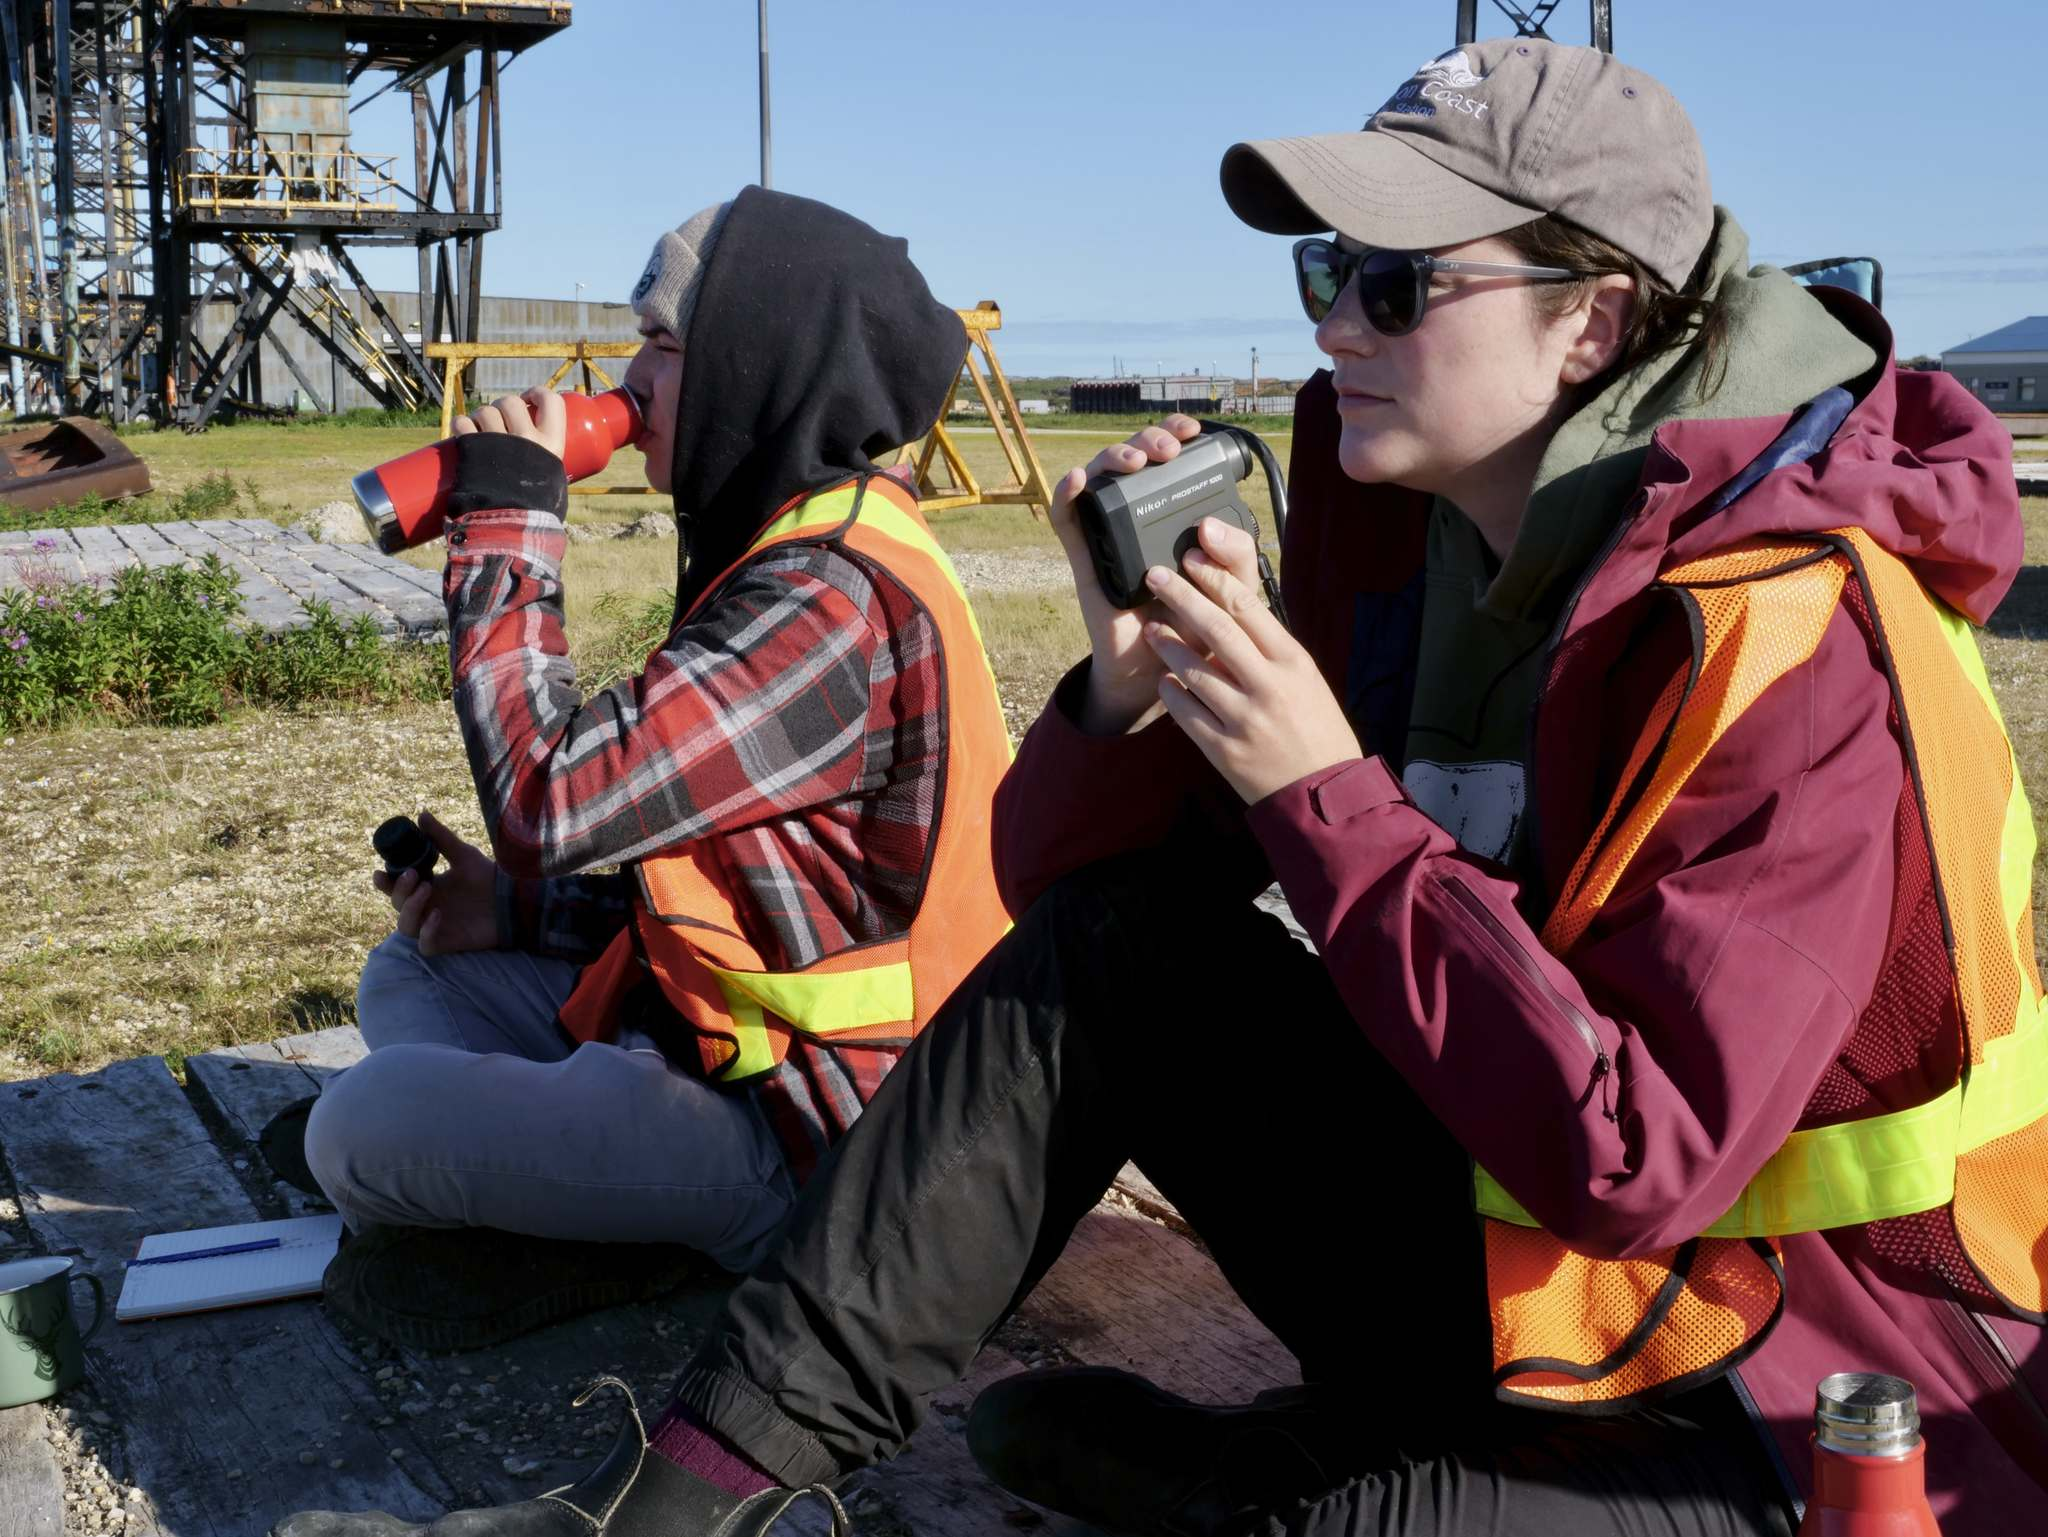 SARAH LAWRYNUIK / WINNIPEG FREE PRESS</p><p>Terry Palmer (left) and Erica Gillis document belugas' behaviour in the estuary from their perch at the Port of Churchill.</p>